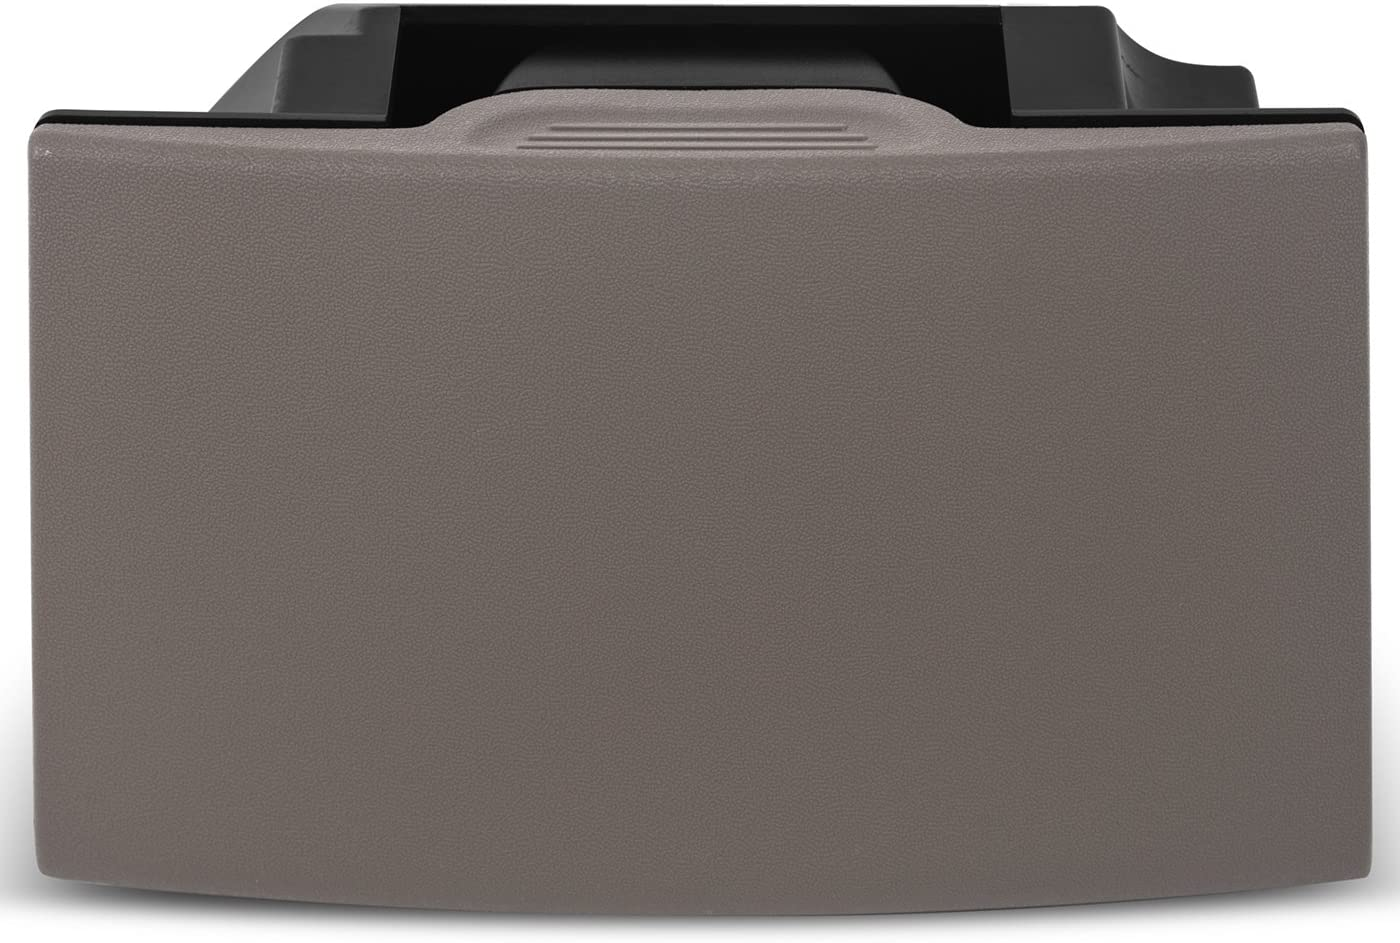 Cup Max 66% OFF Holder Insert for 05-12 55% OFF Pathfinder Xterra Fronti 05-15 05-19